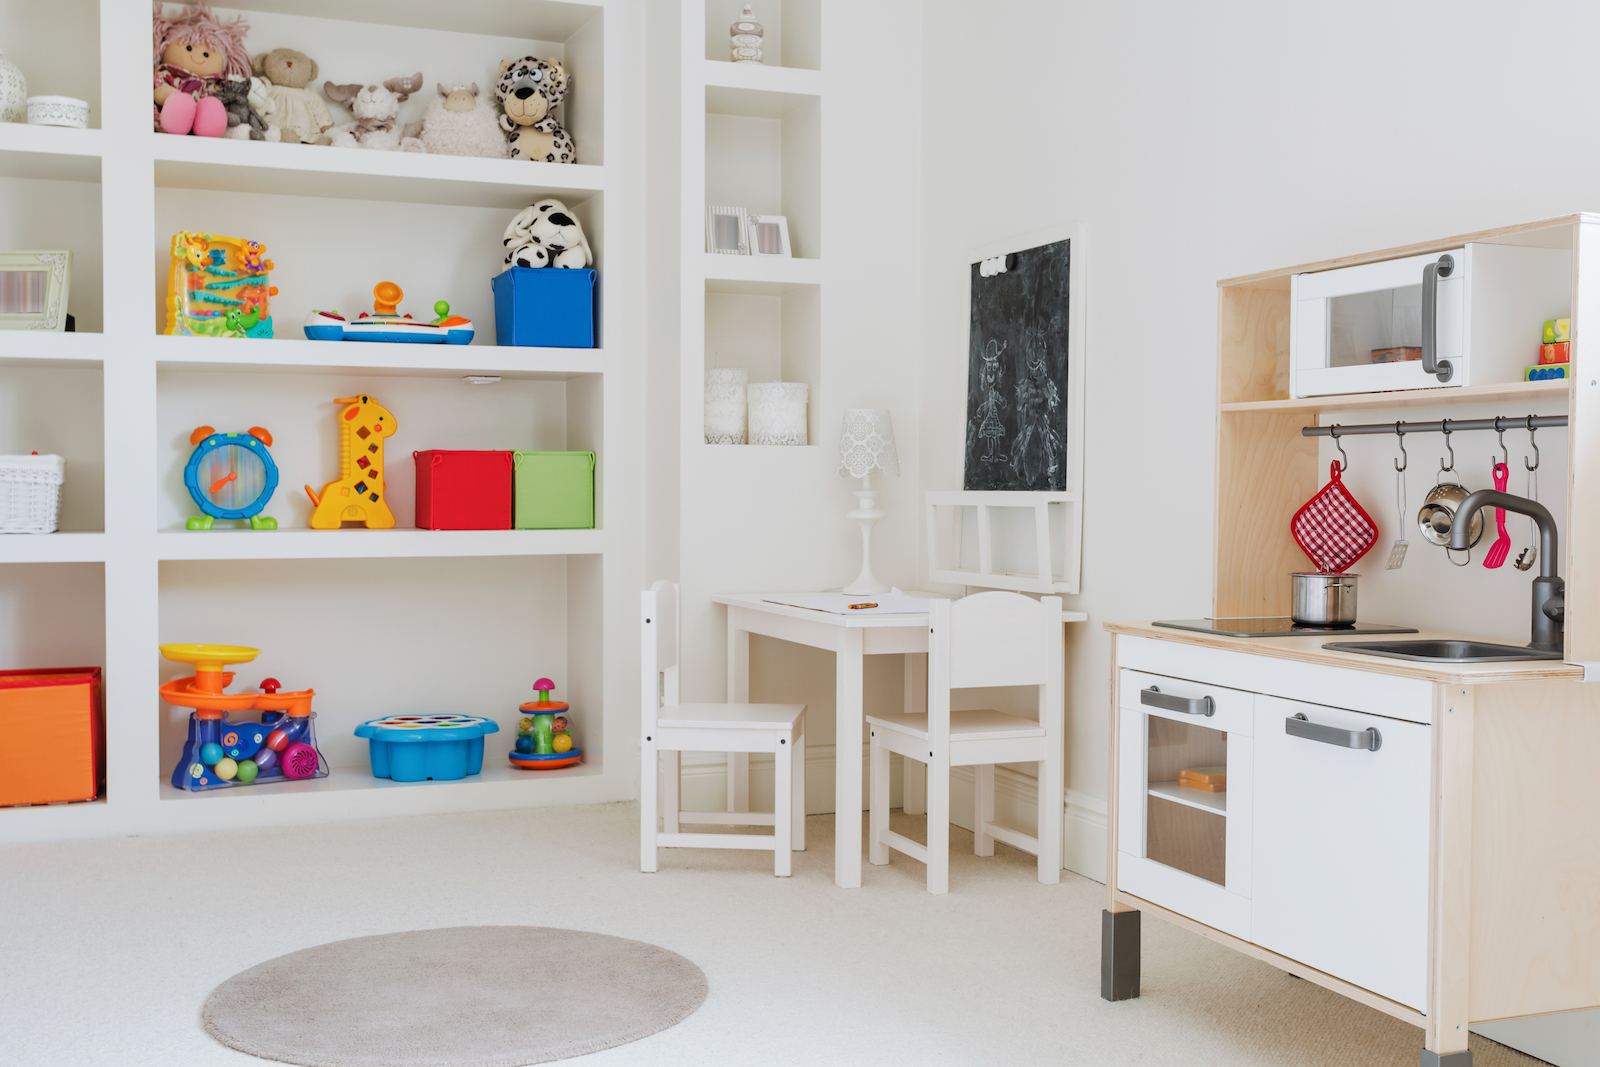 Play Therapy  - What it is, how it works and where to find a play therapist near me  - child development , play therapy room